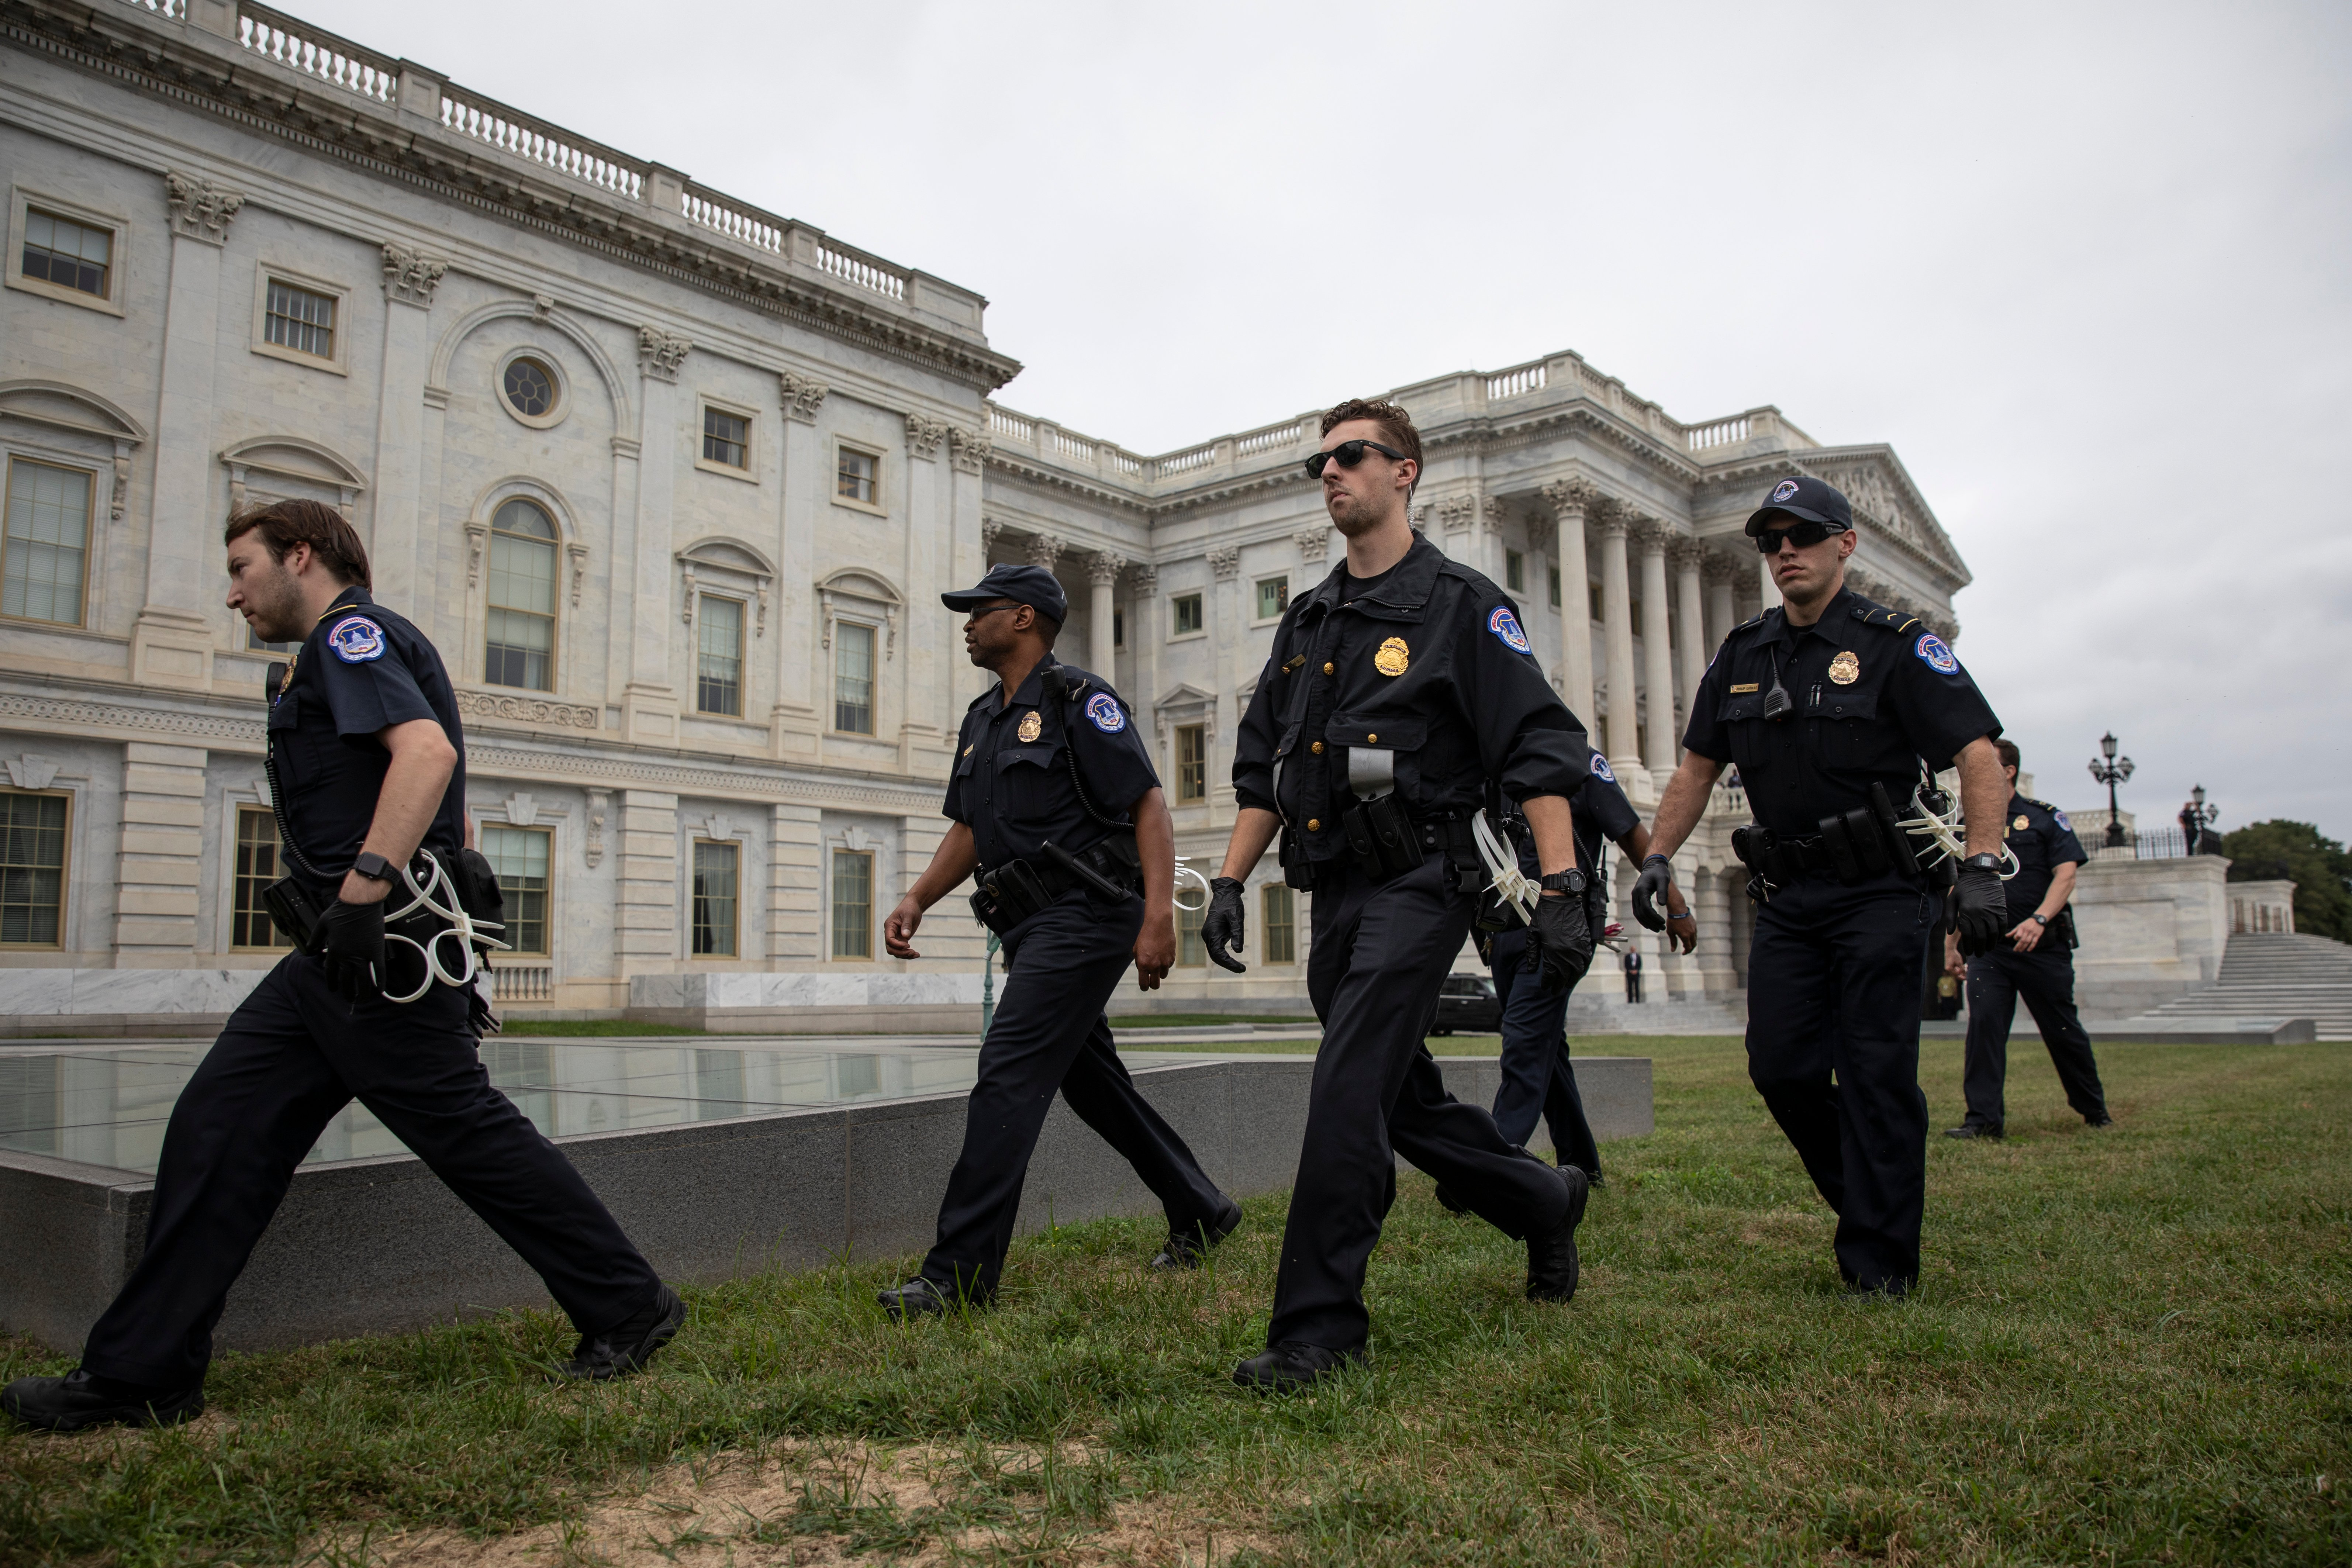 Capitol Police officers arrive as protestors occupy the steps on the East Front of the U.S. Capitol in protest of Supreme Court nominee Judge Brett Kavanaugh, October 6, 2018 in Washington, DC. (Photo by Drew Angerer/Getty Images)